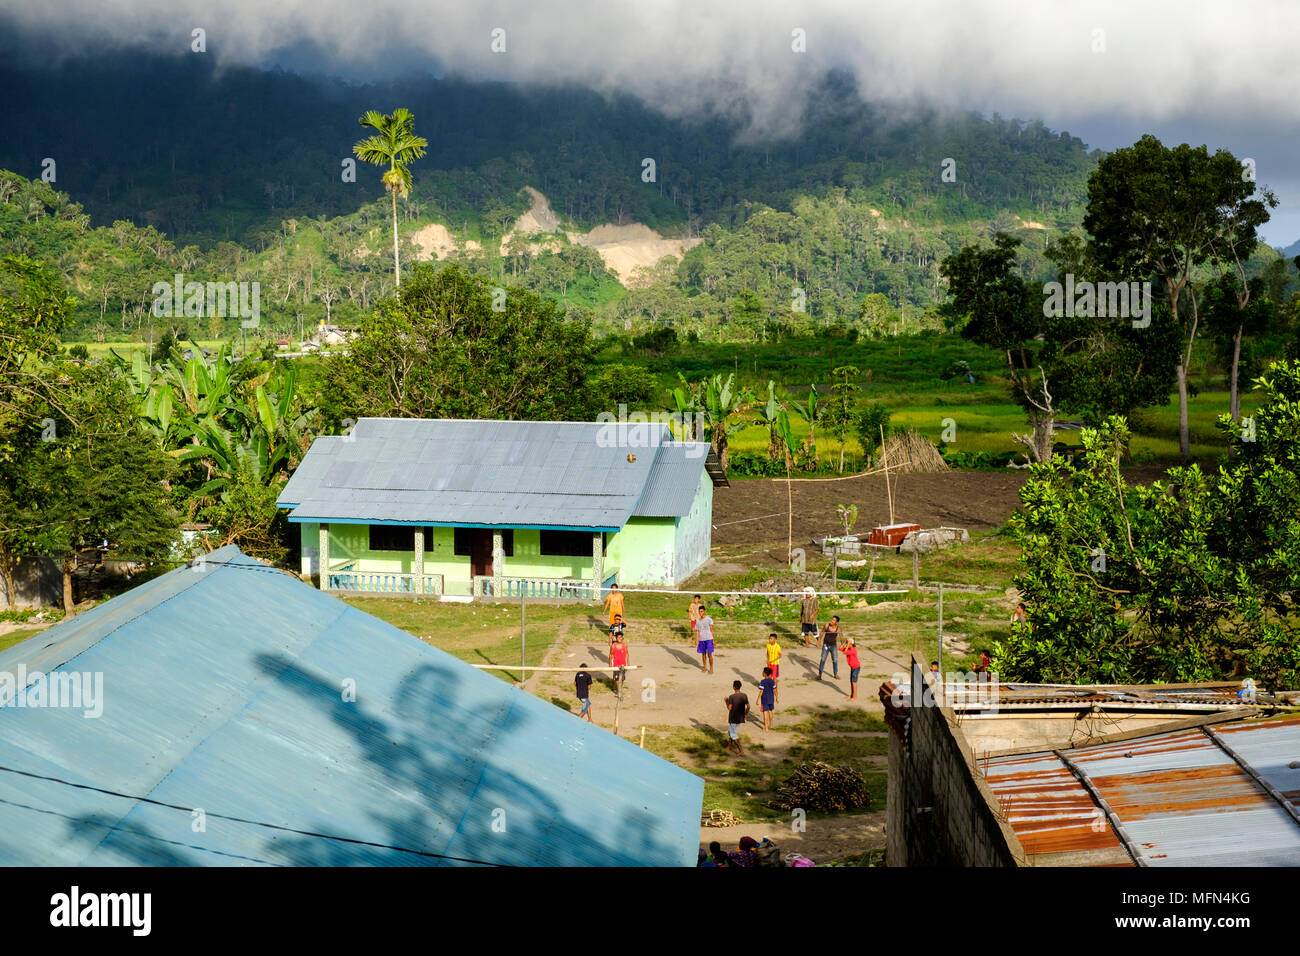 A group of kids and youngsters play a game of voleyball in the small village of Moni, Ende Regency, Flores Island, Indonesia. - Stock Image